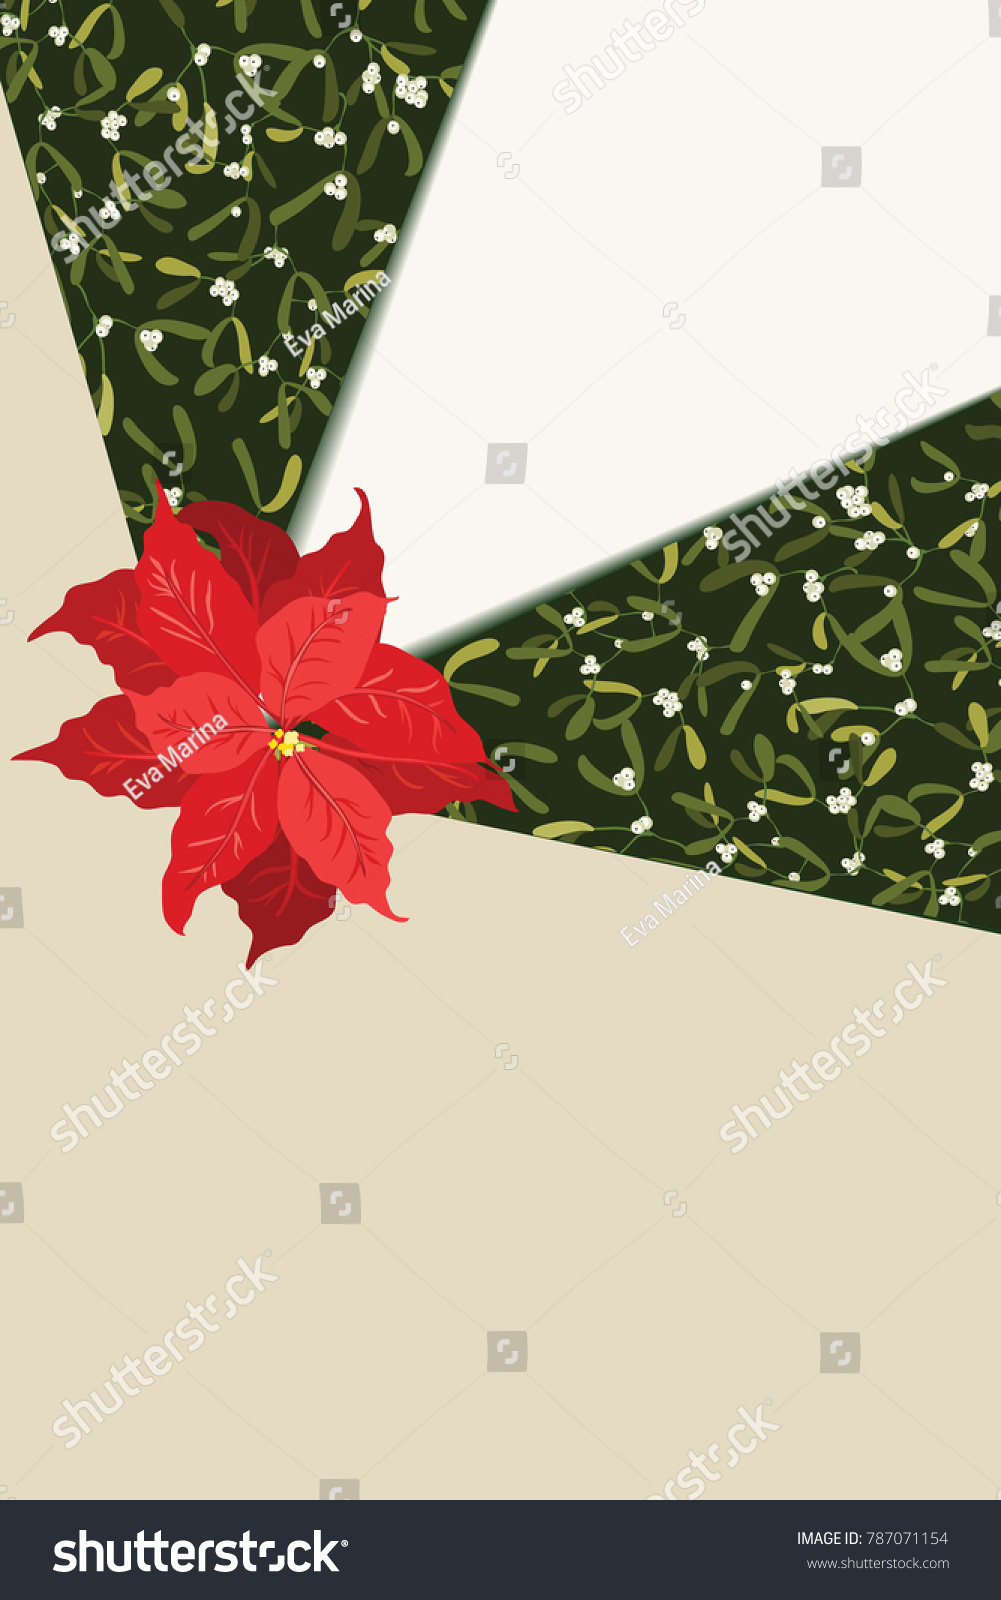 Floral Vintage Invitation Card Poinsettia Winter Stock Illustration ...